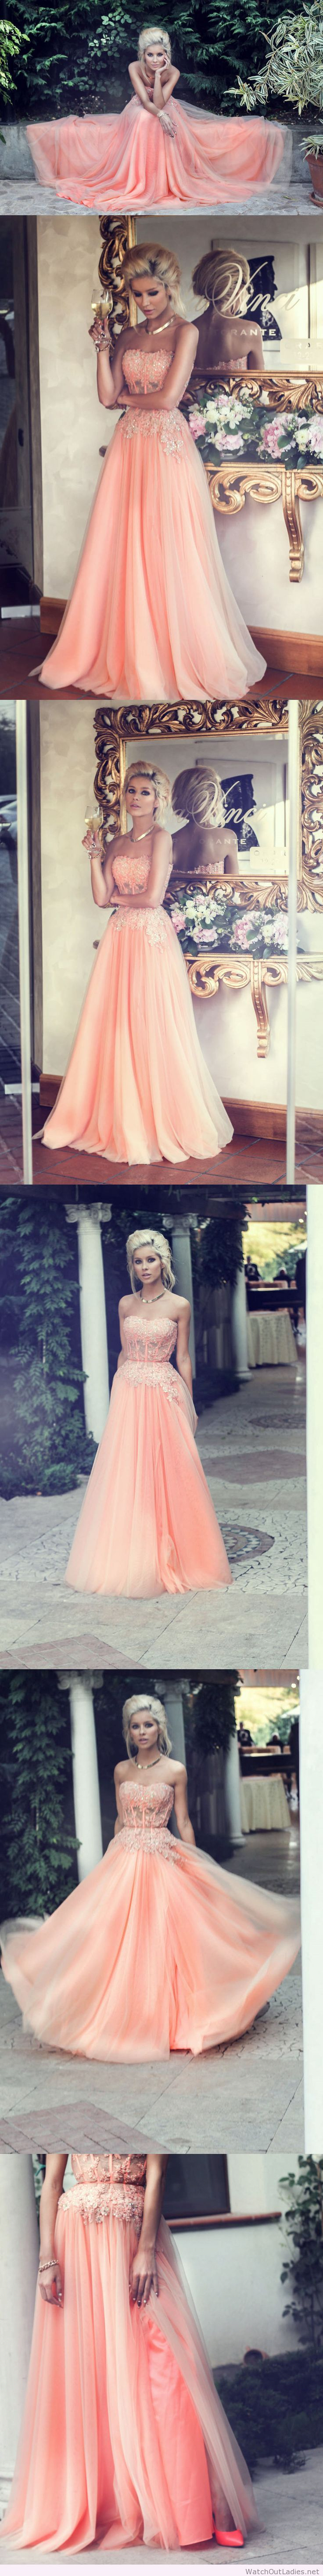 Party dress beaded bodice off shoulder long prom dress evening gown